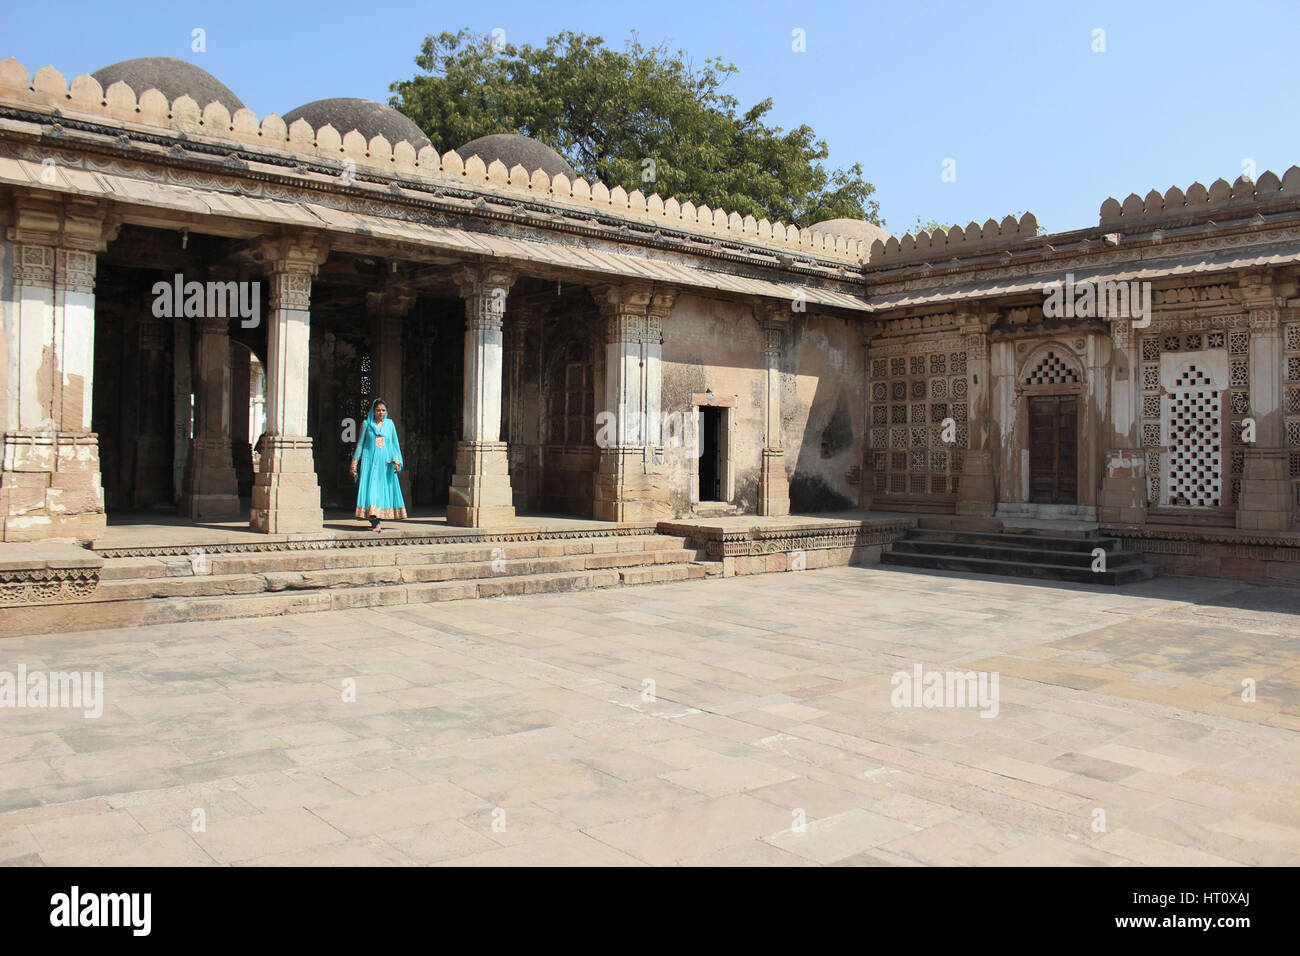 Tourist standing at courtyard at Sarkhej Roza, Makarba, Ahmedabad in Gujarat India. - Stock Image